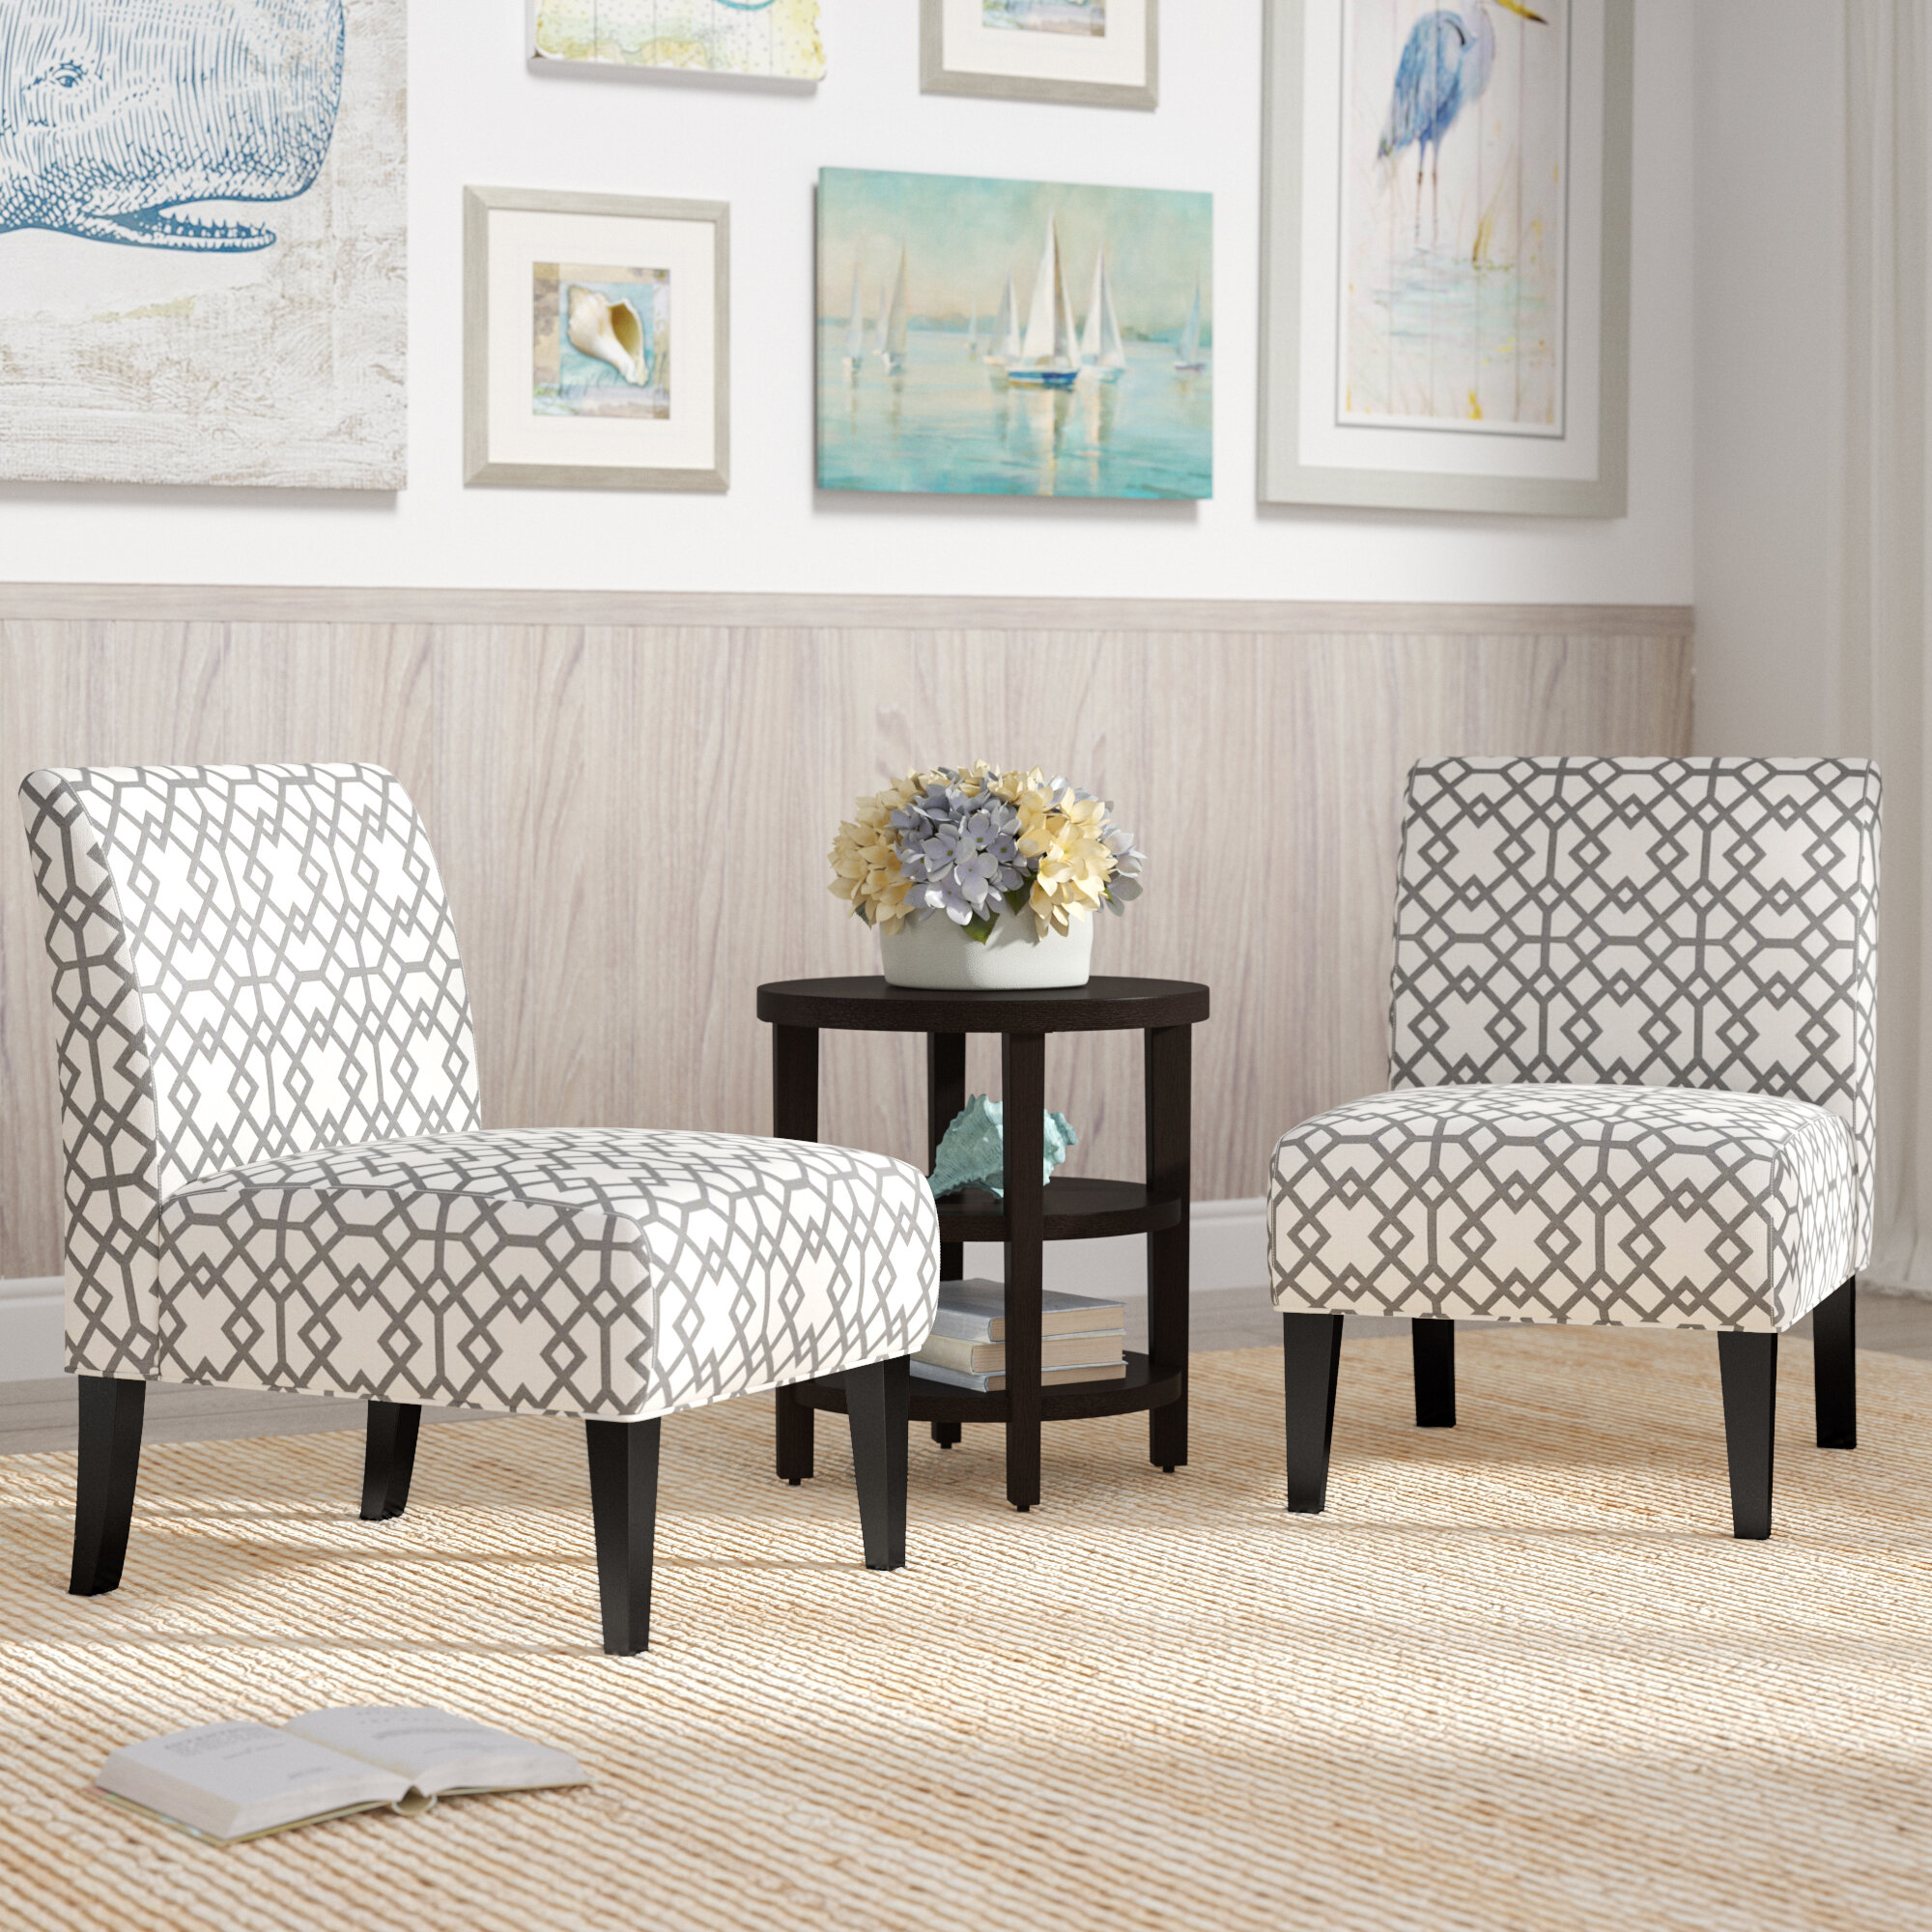 chair friday chairs hargrove favorites farmhouse accent of house